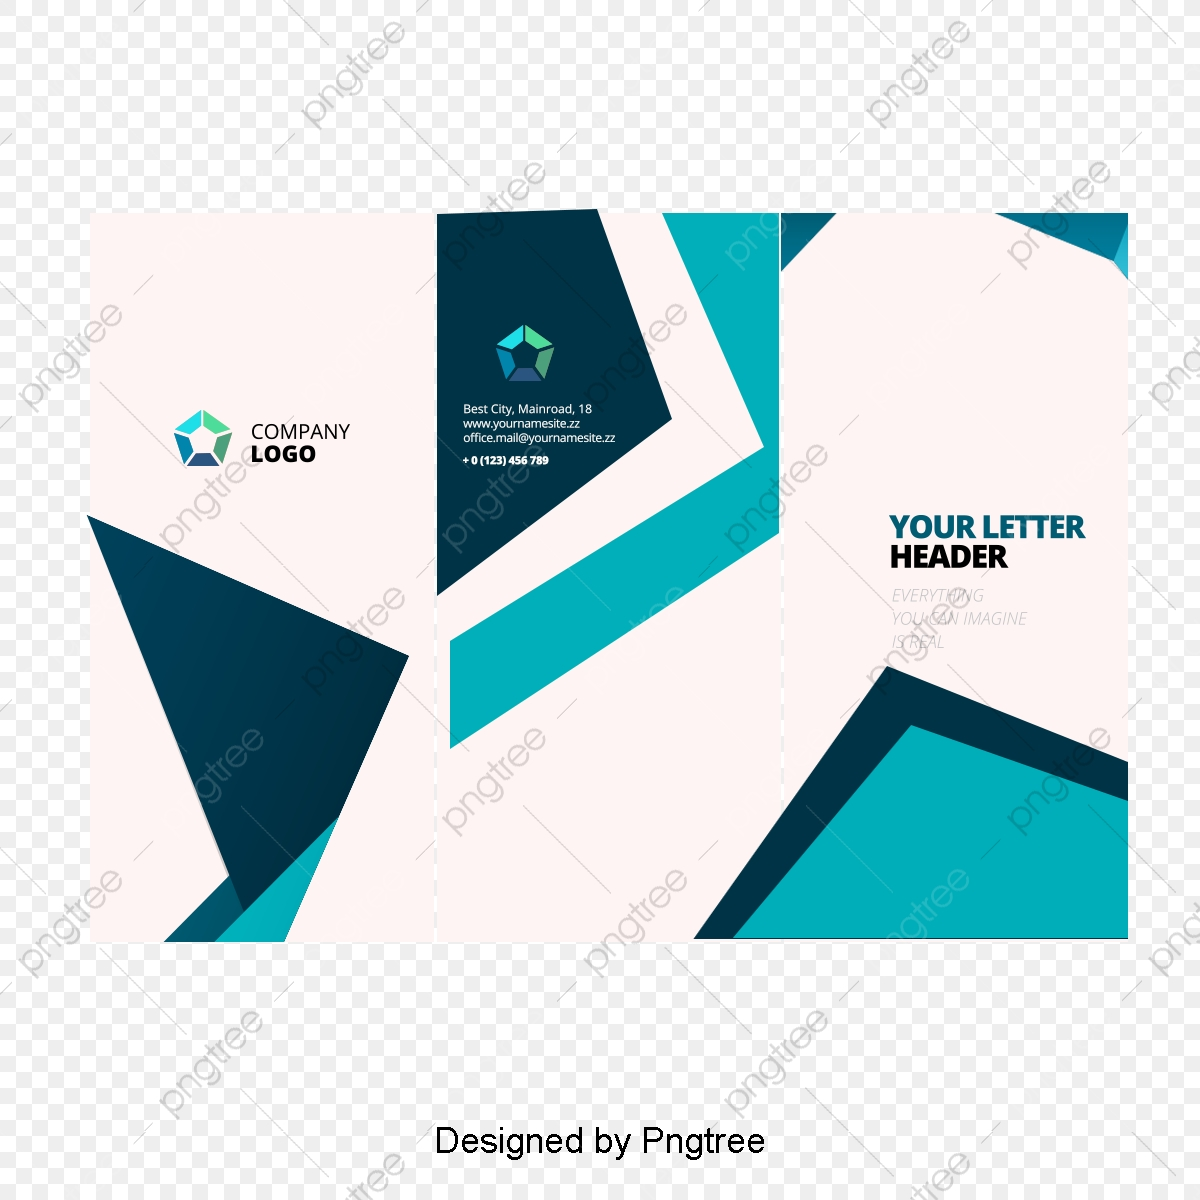 Fashion Design Layout Vector Material Folding Layout Leaflets Leaflet Design Png Transparent Clipart Image And Psd File For Free Download